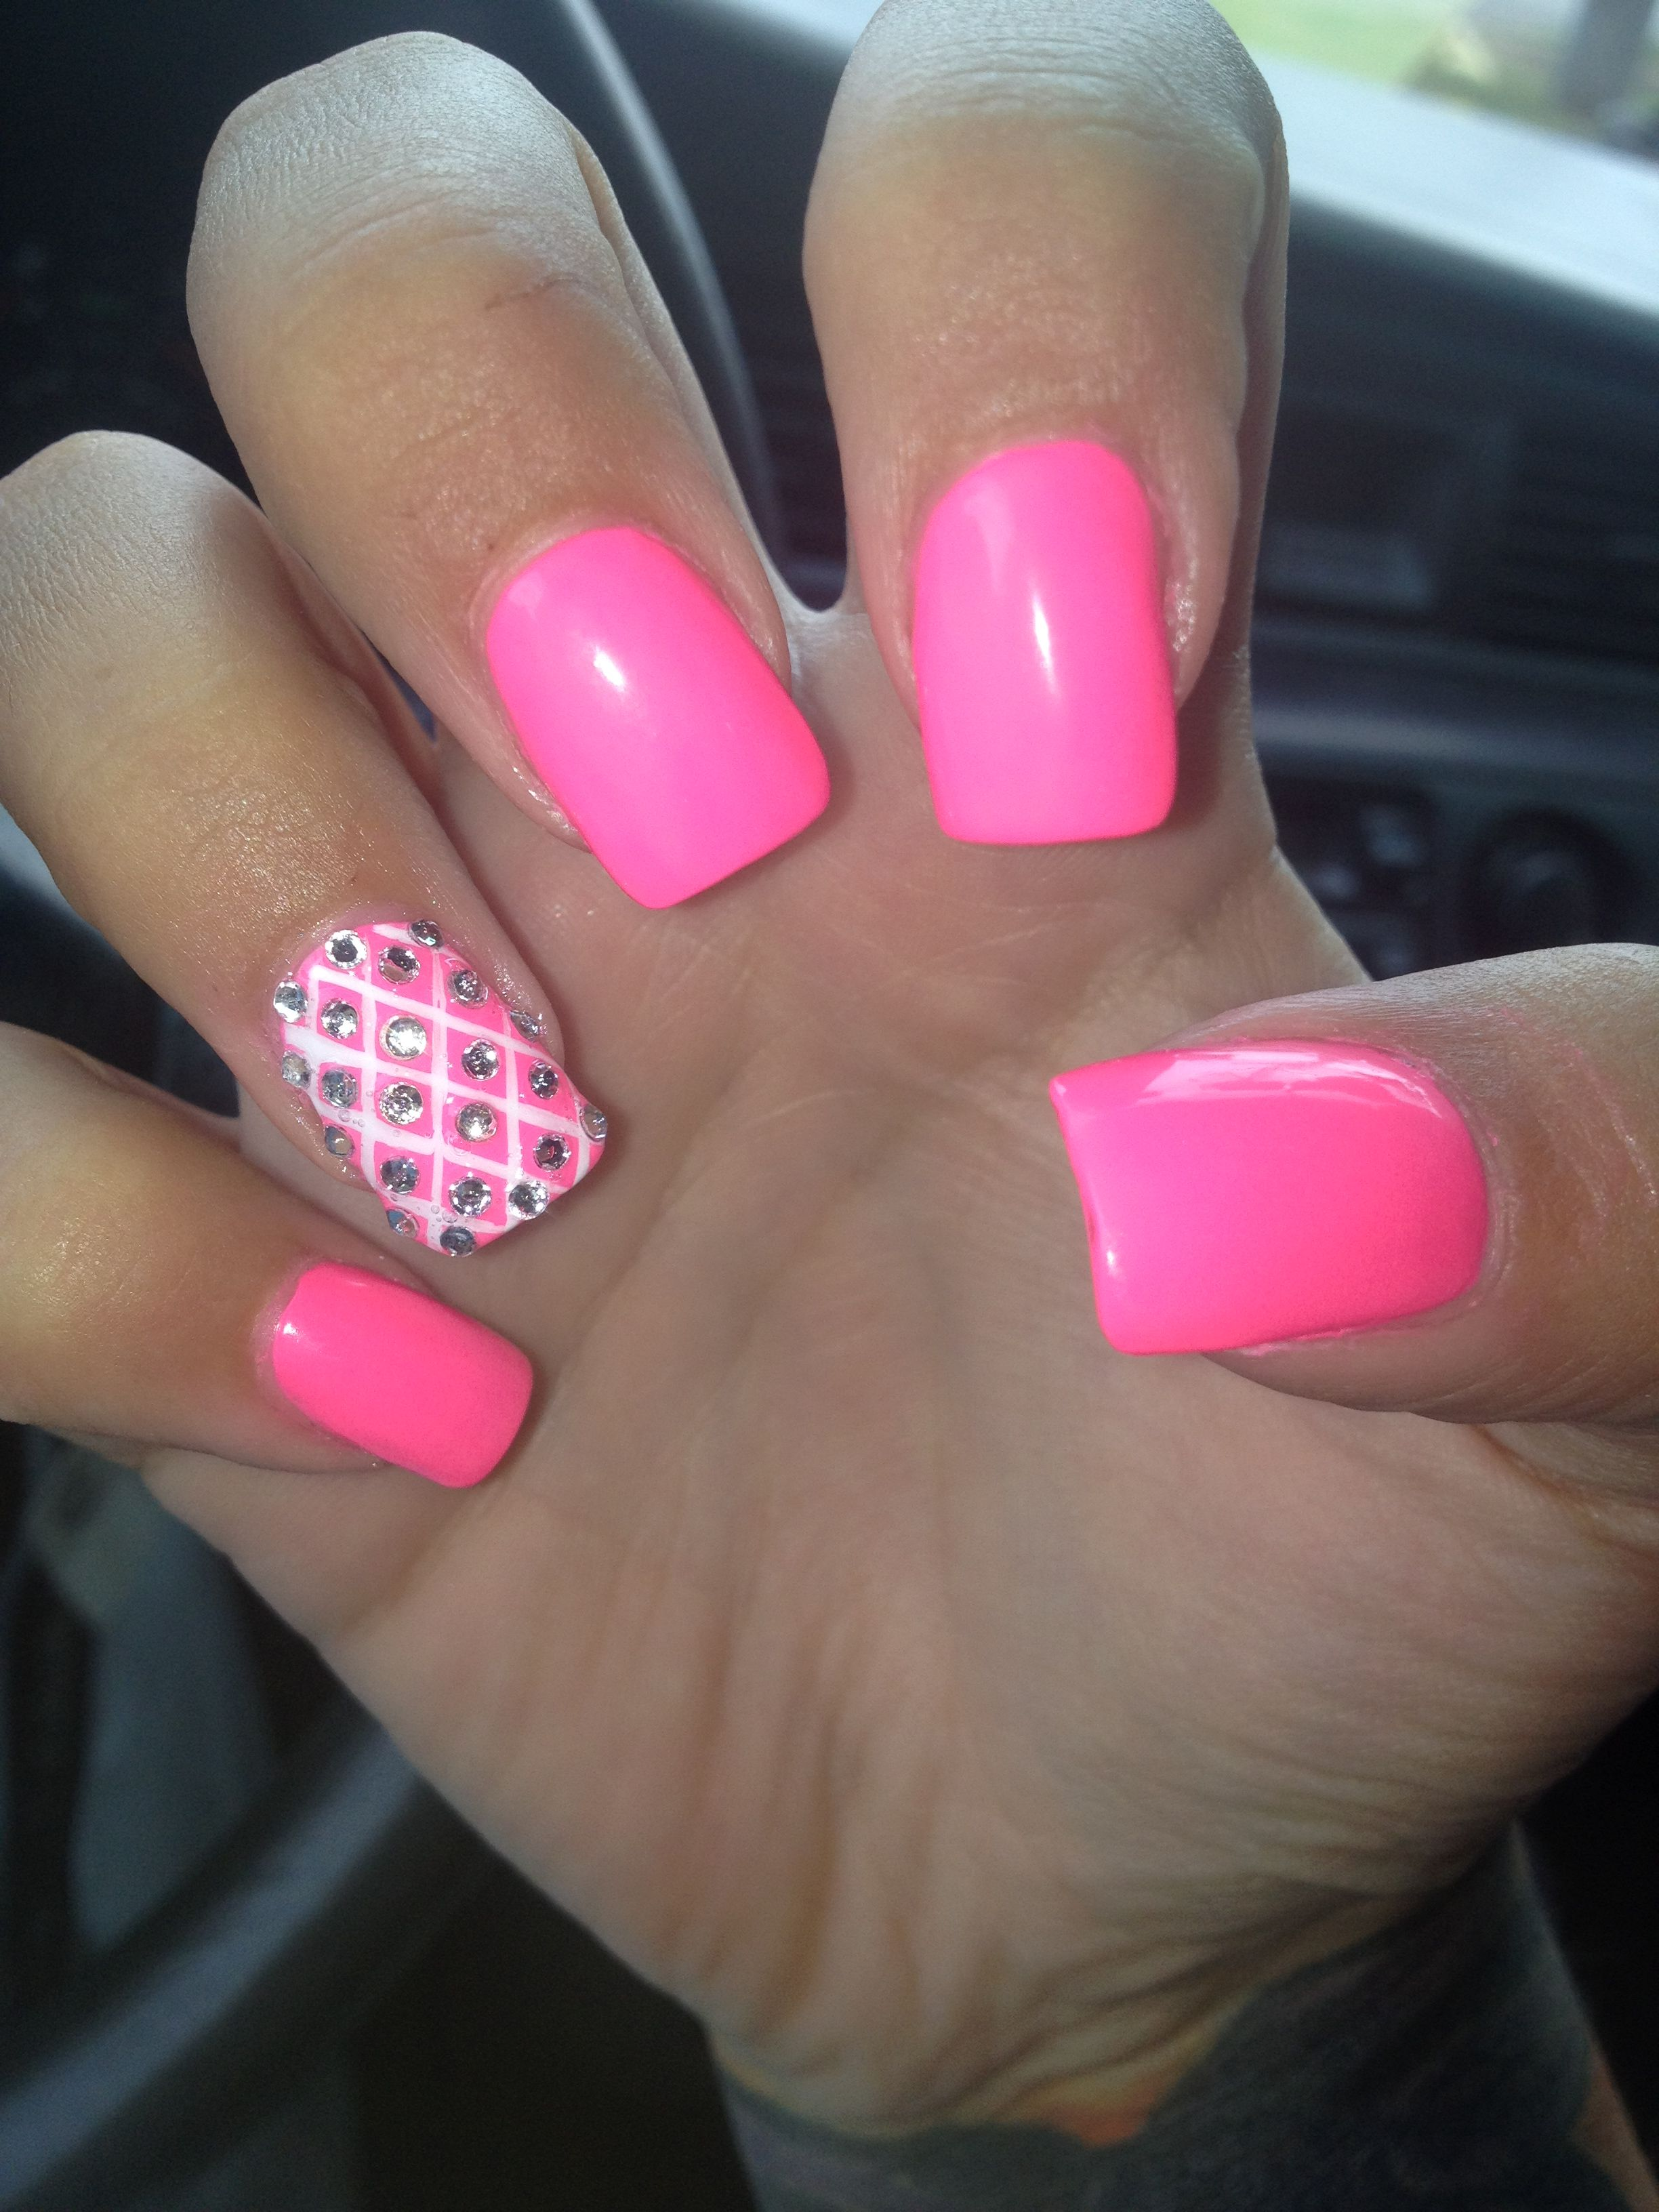 I Would Do A White Nail With Gold Accent And Make Them Pointed